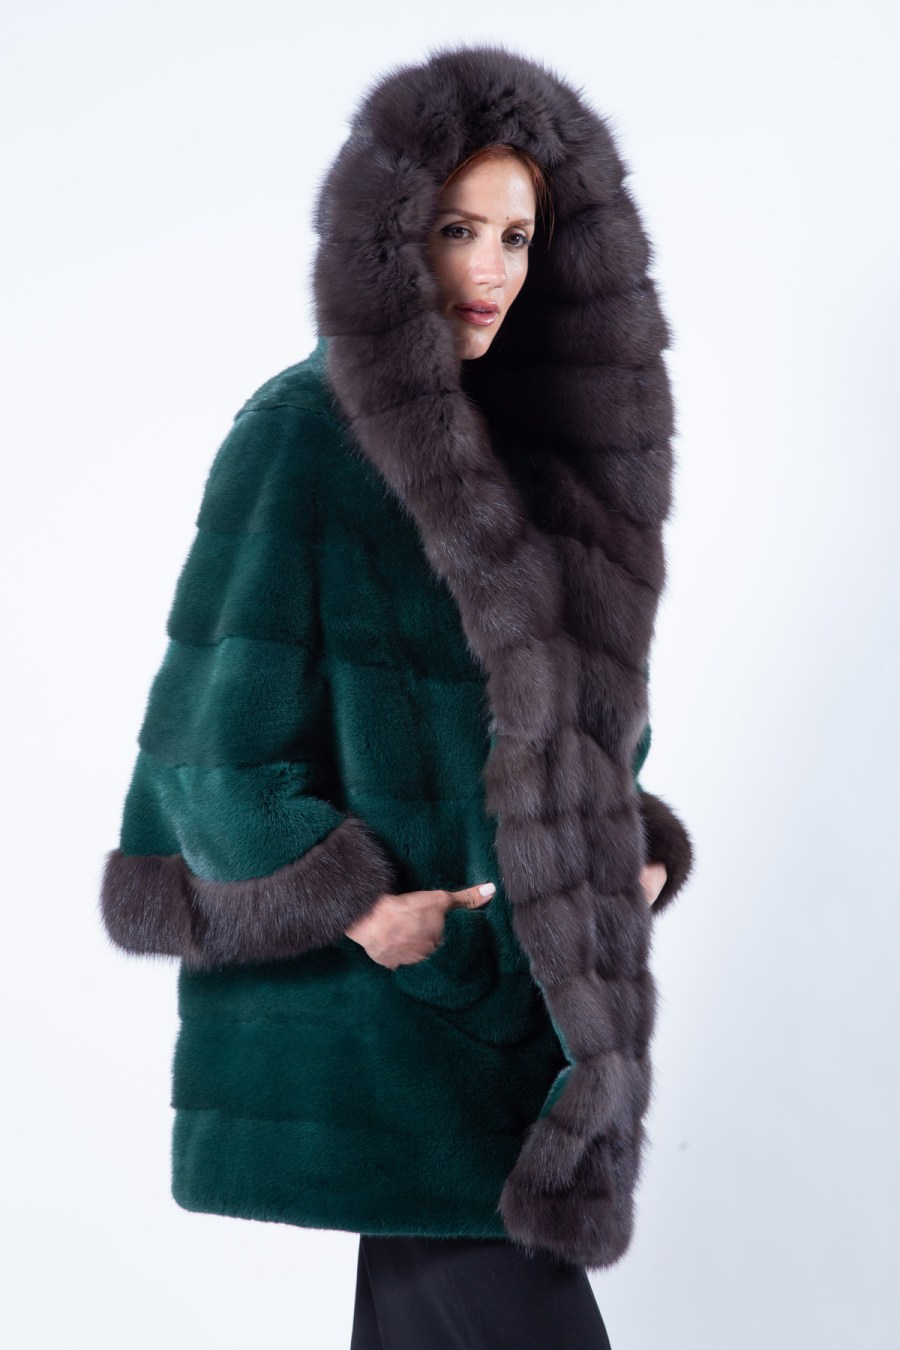 Tatiana Shock Green Mink Jacket with hood - Sarigianni Furs